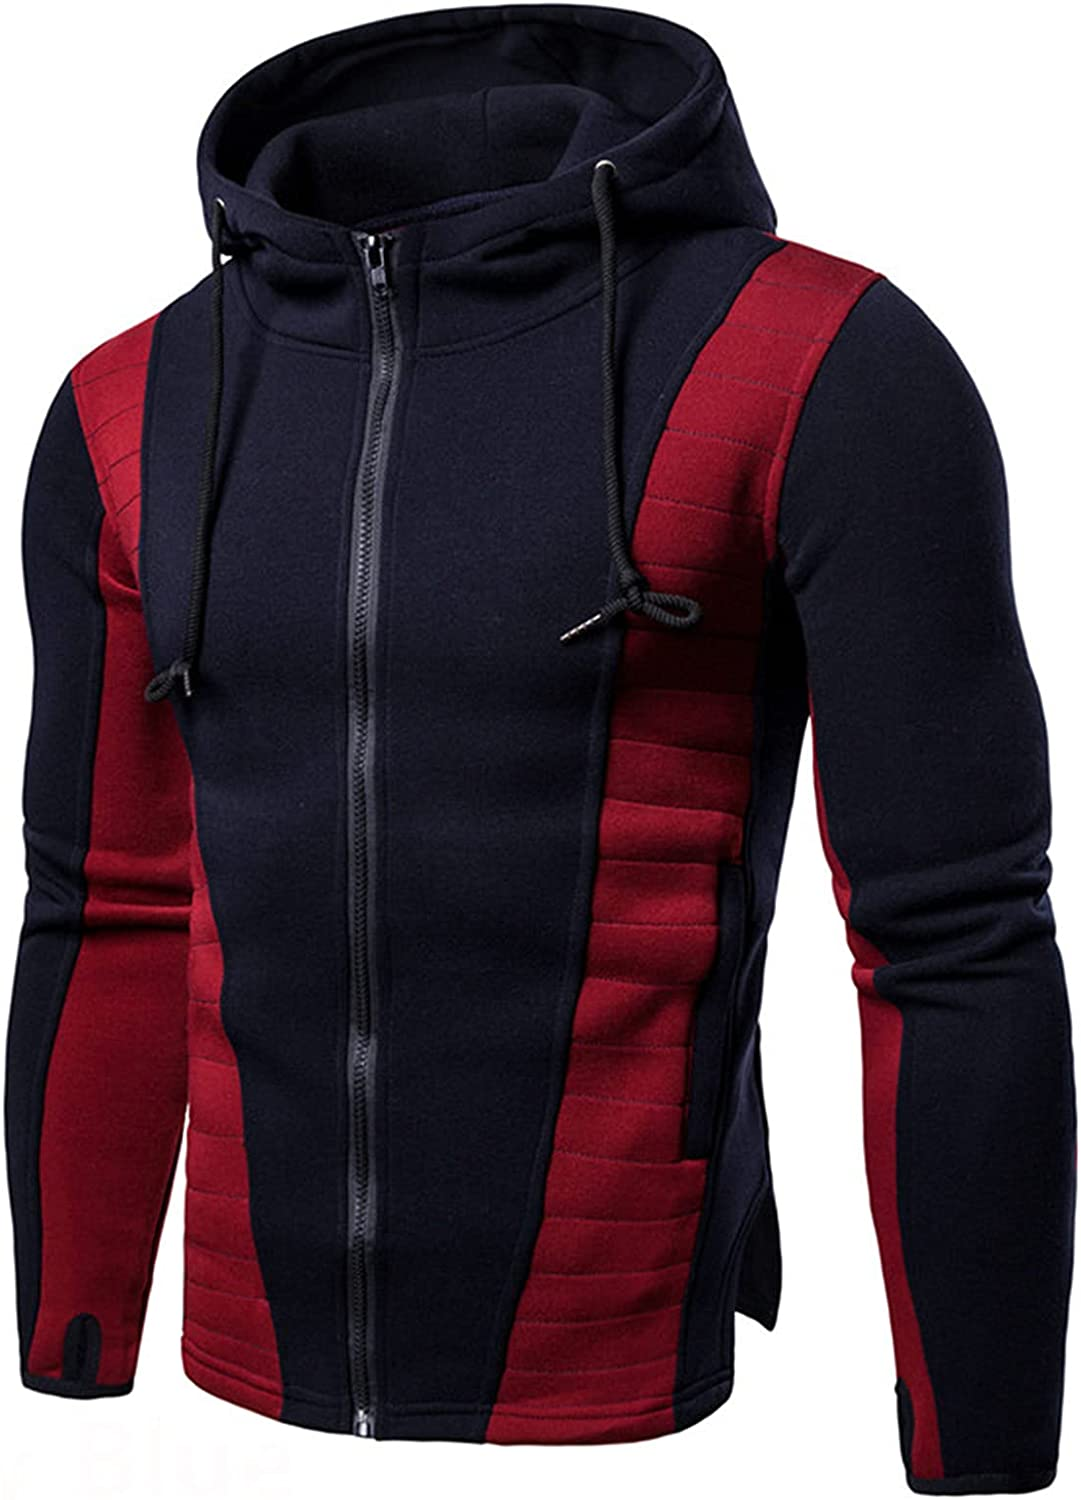 YUIJ Mens Casual Slim Fit Hoodie,Fashion Color Block Coat,Zip-Up Long Sleeve Active Jackets